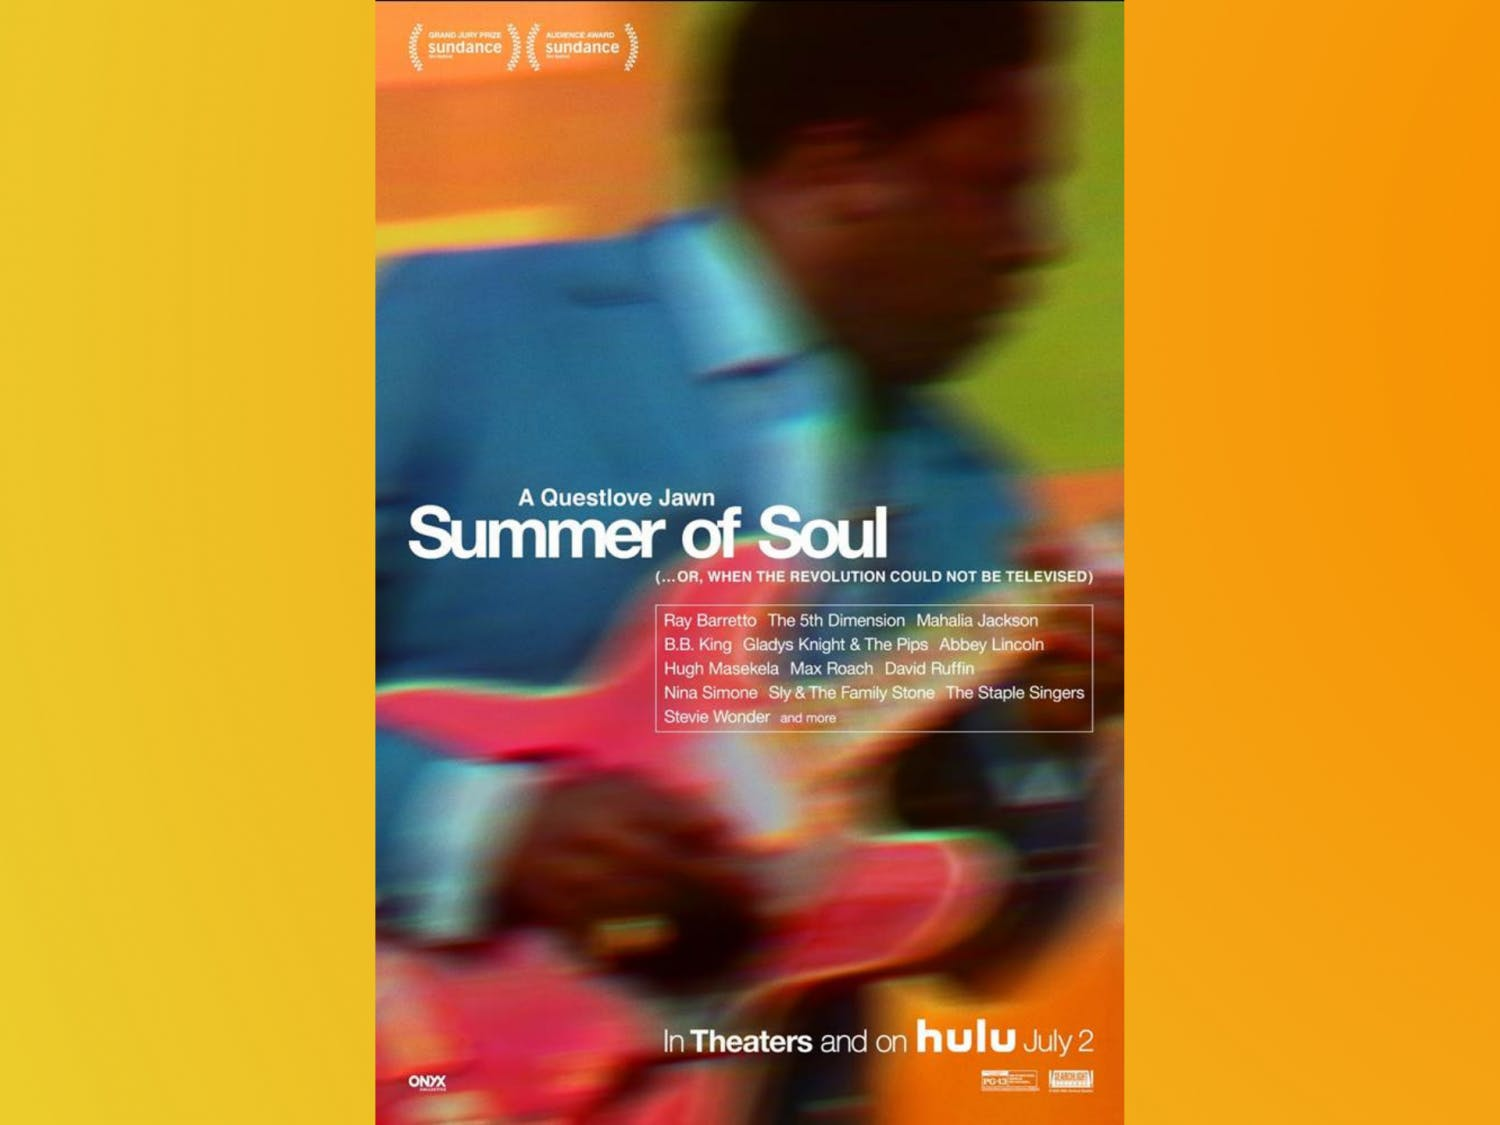 """Ahmir """"Questlove"""" Thompson's film directorial debut """"Summer of Soul (...Or, When the Revolution Could Not Be Televised)"""" had a limited theatrical release in the U.S. on June 25 and expanded a week later to theaters and on Hulu. (Movie poster retrieved from IMDb)"""